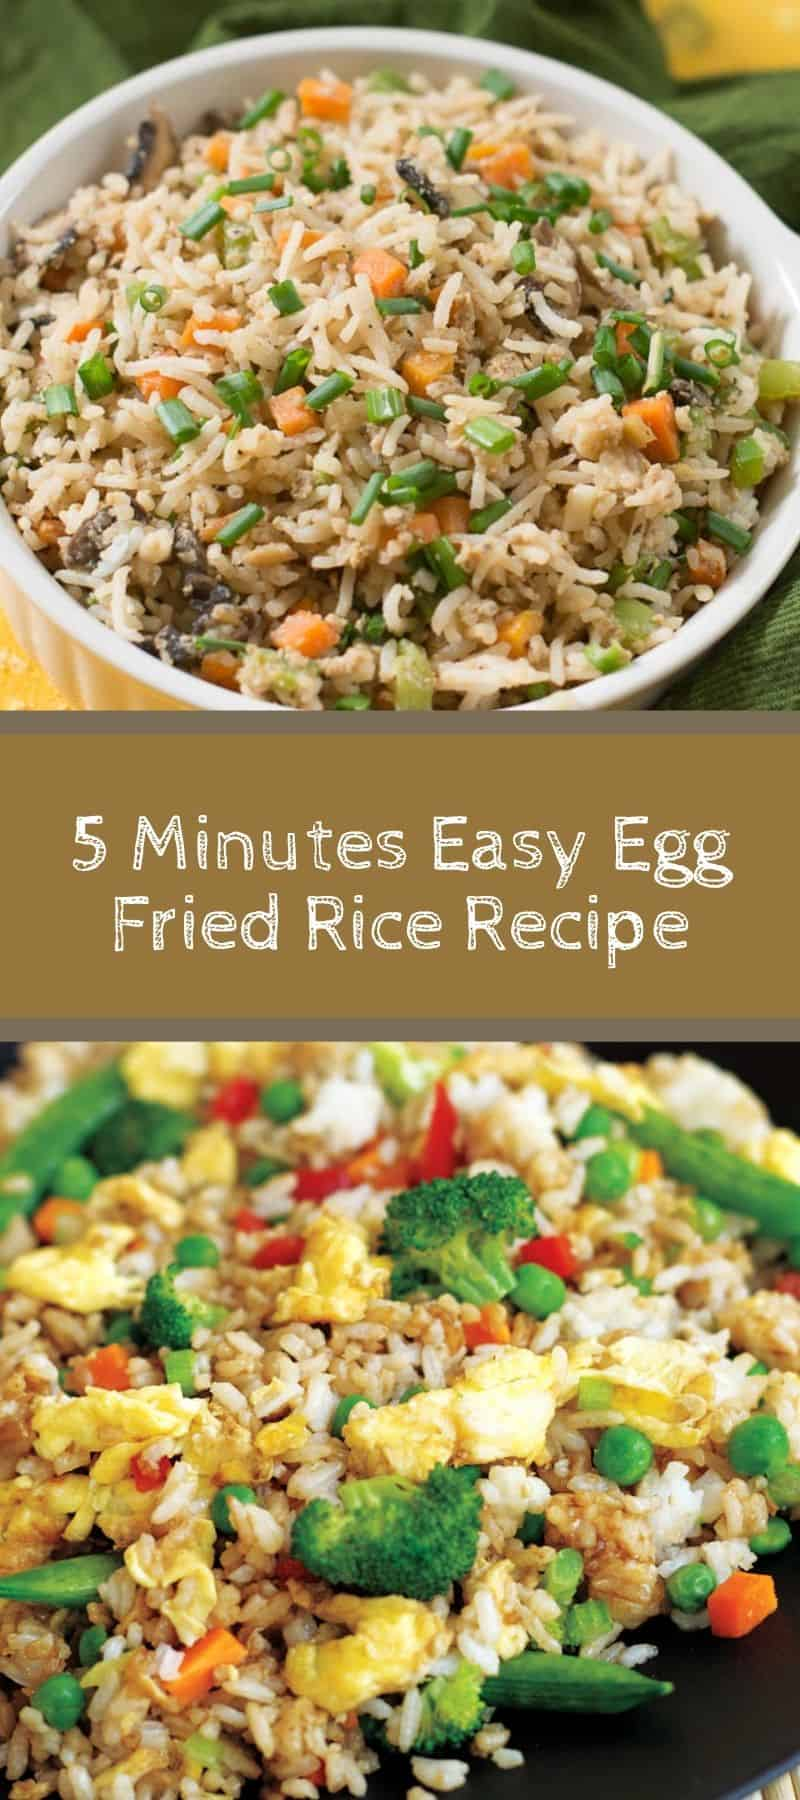 5 Minutes Easy Egg Fried Rice Recipe 3